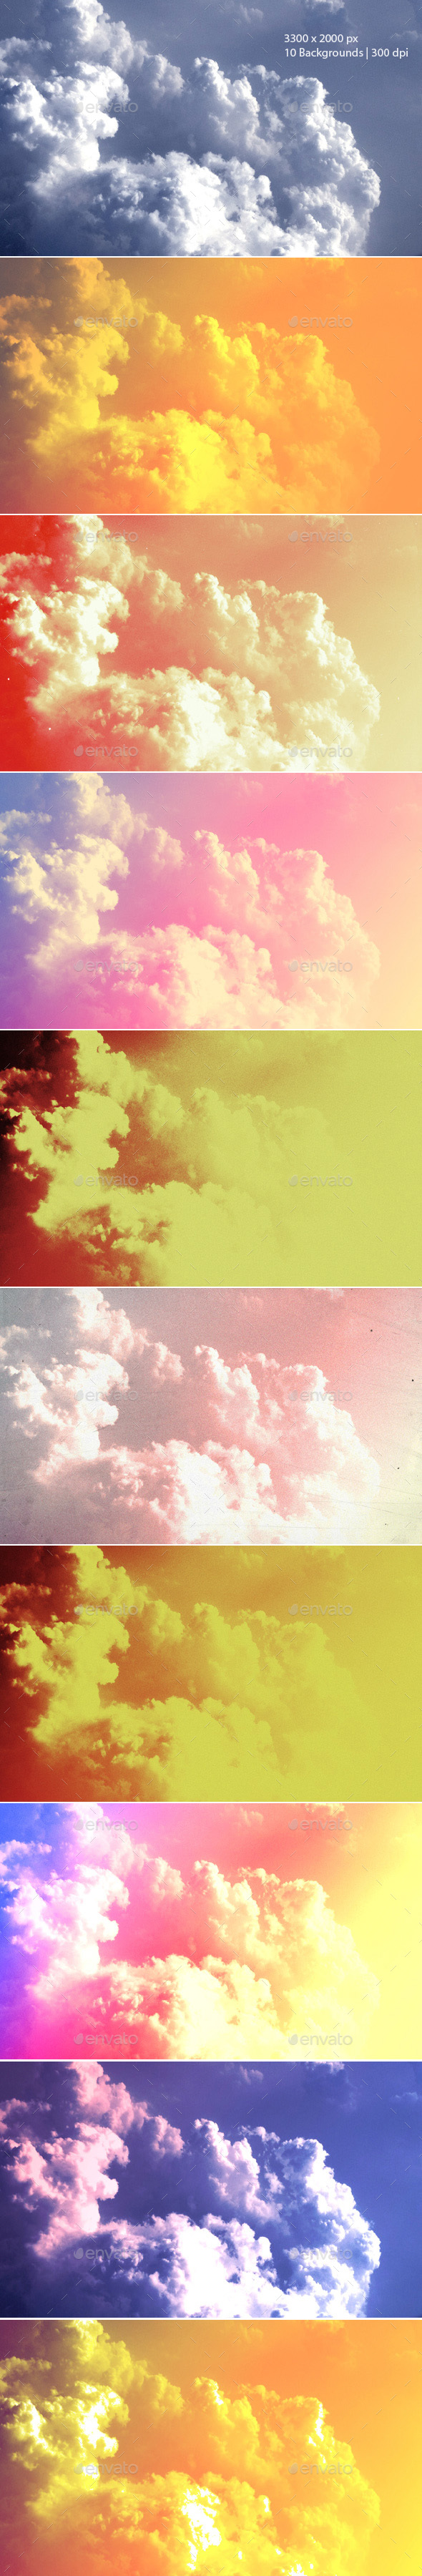 Colorful Cloudy Sky Backgrounds   - Abstract Backgrounds